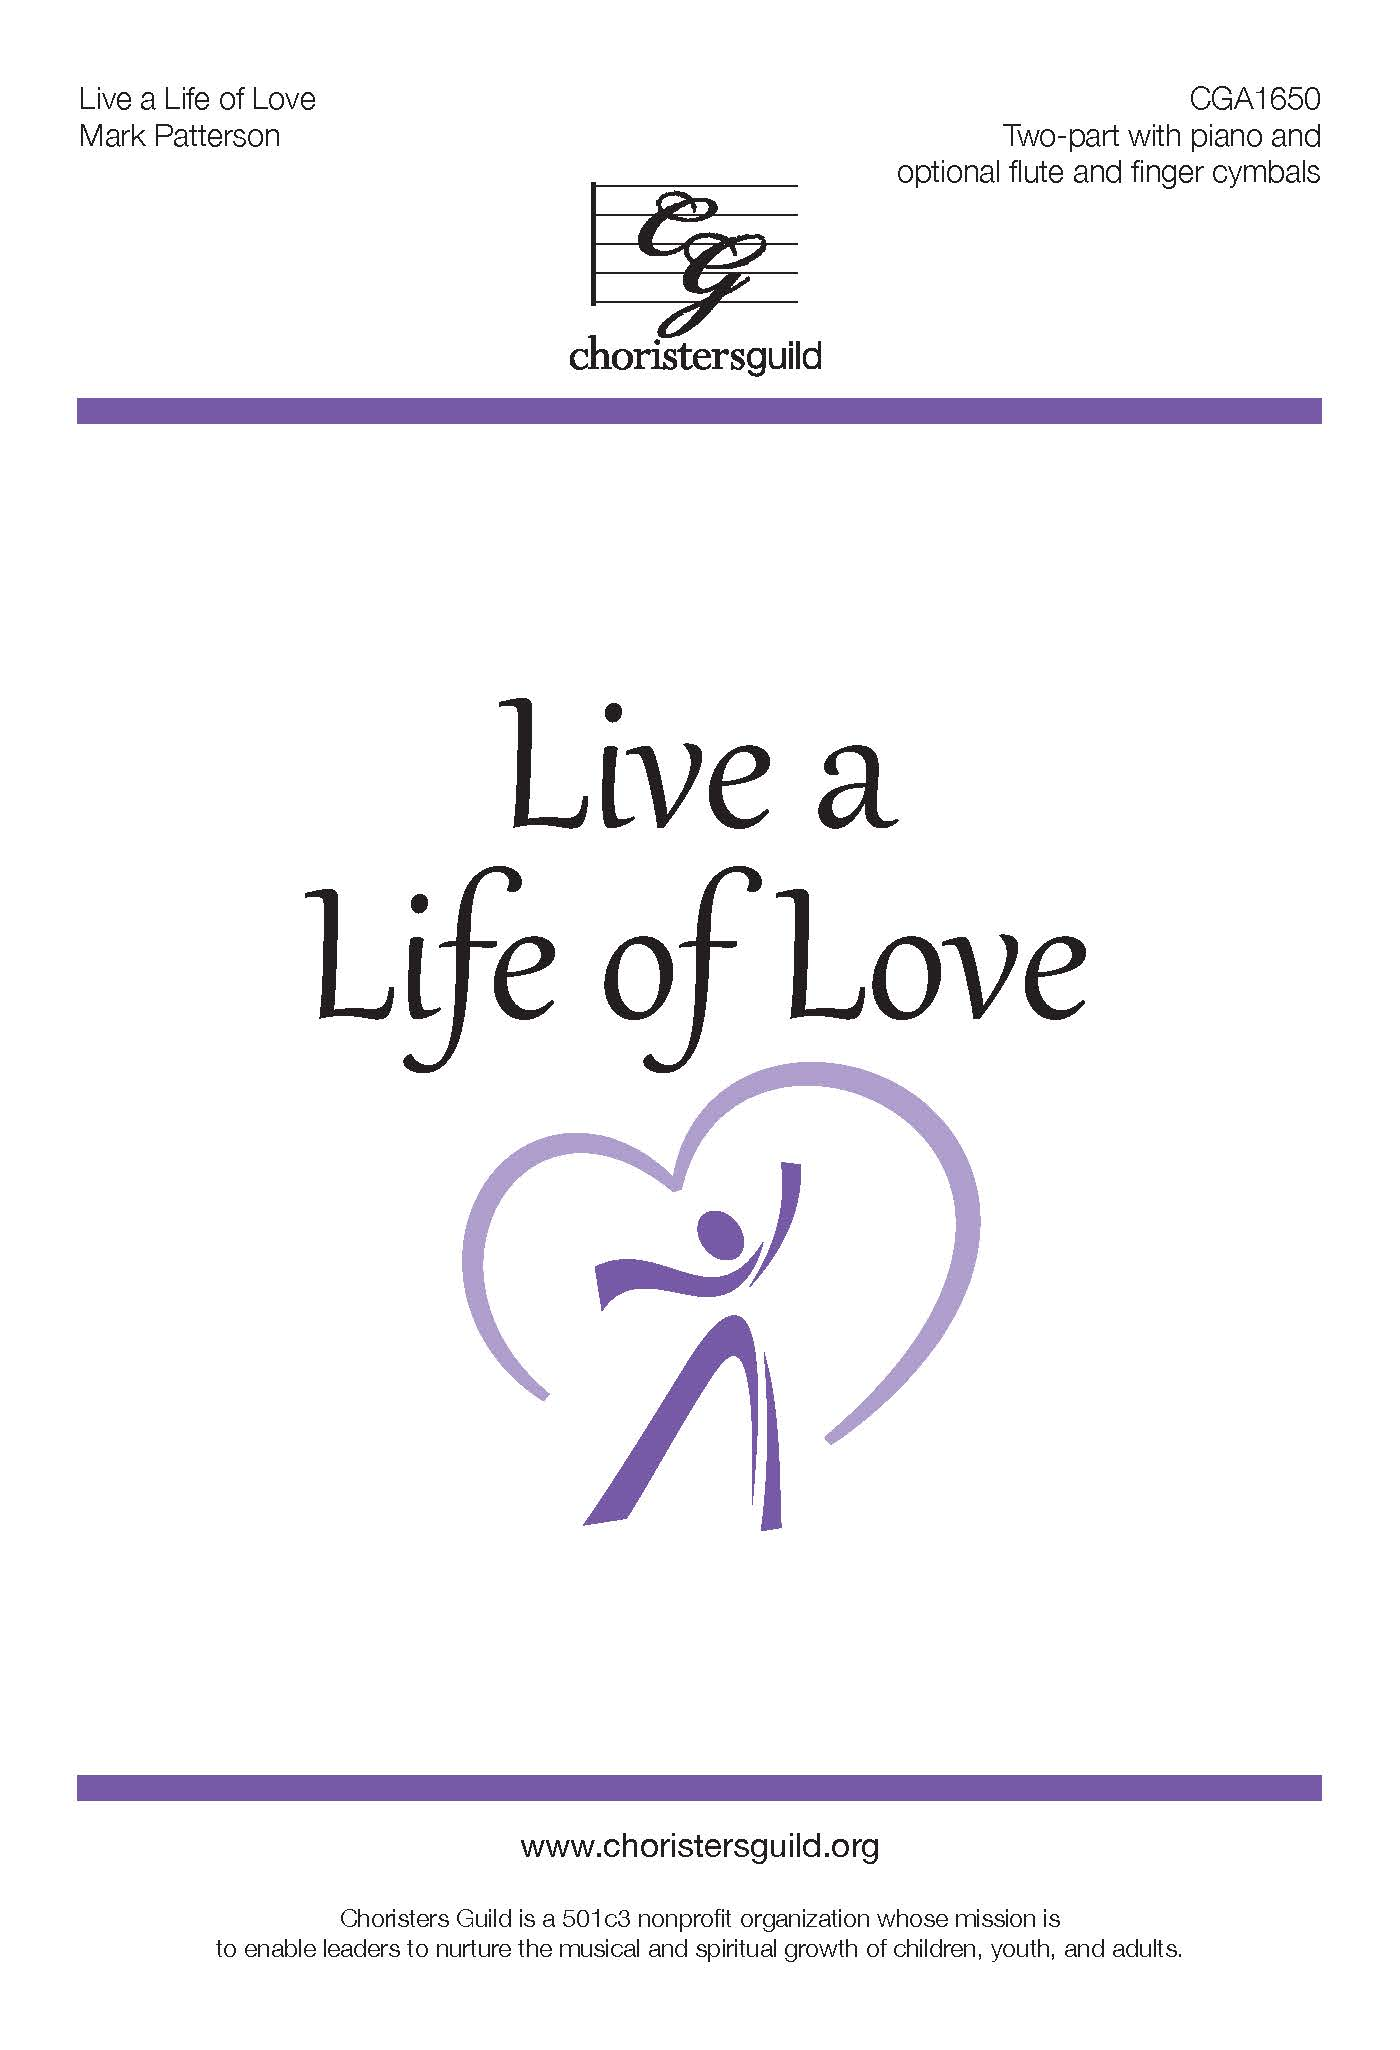 Live a Life of Love - Two-part